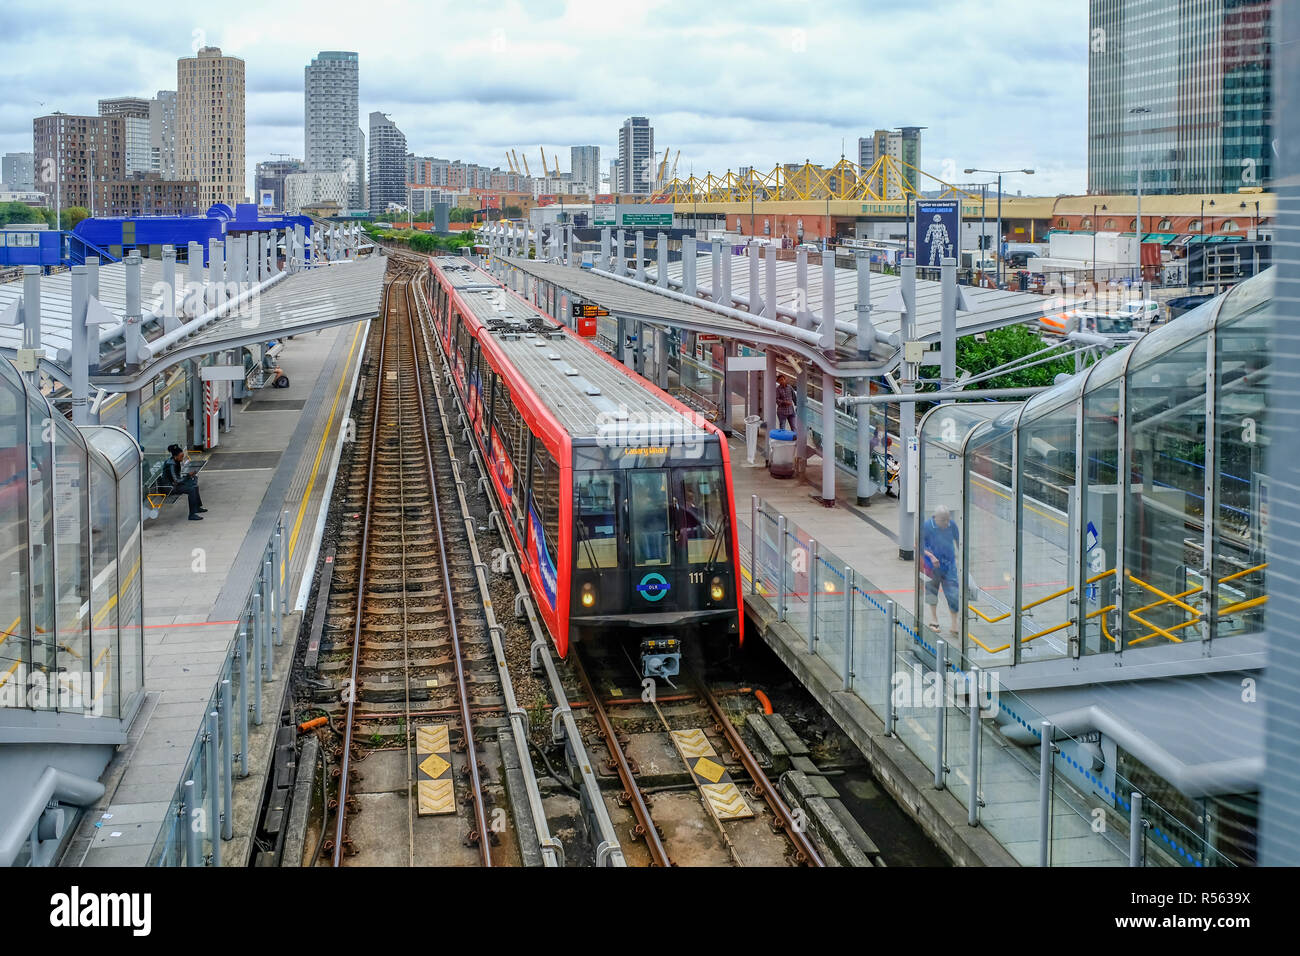 Poplar, London, UK - August 18, 2018: Docklands light railway station at Poplar with a train stopped in the station. - Stock Image